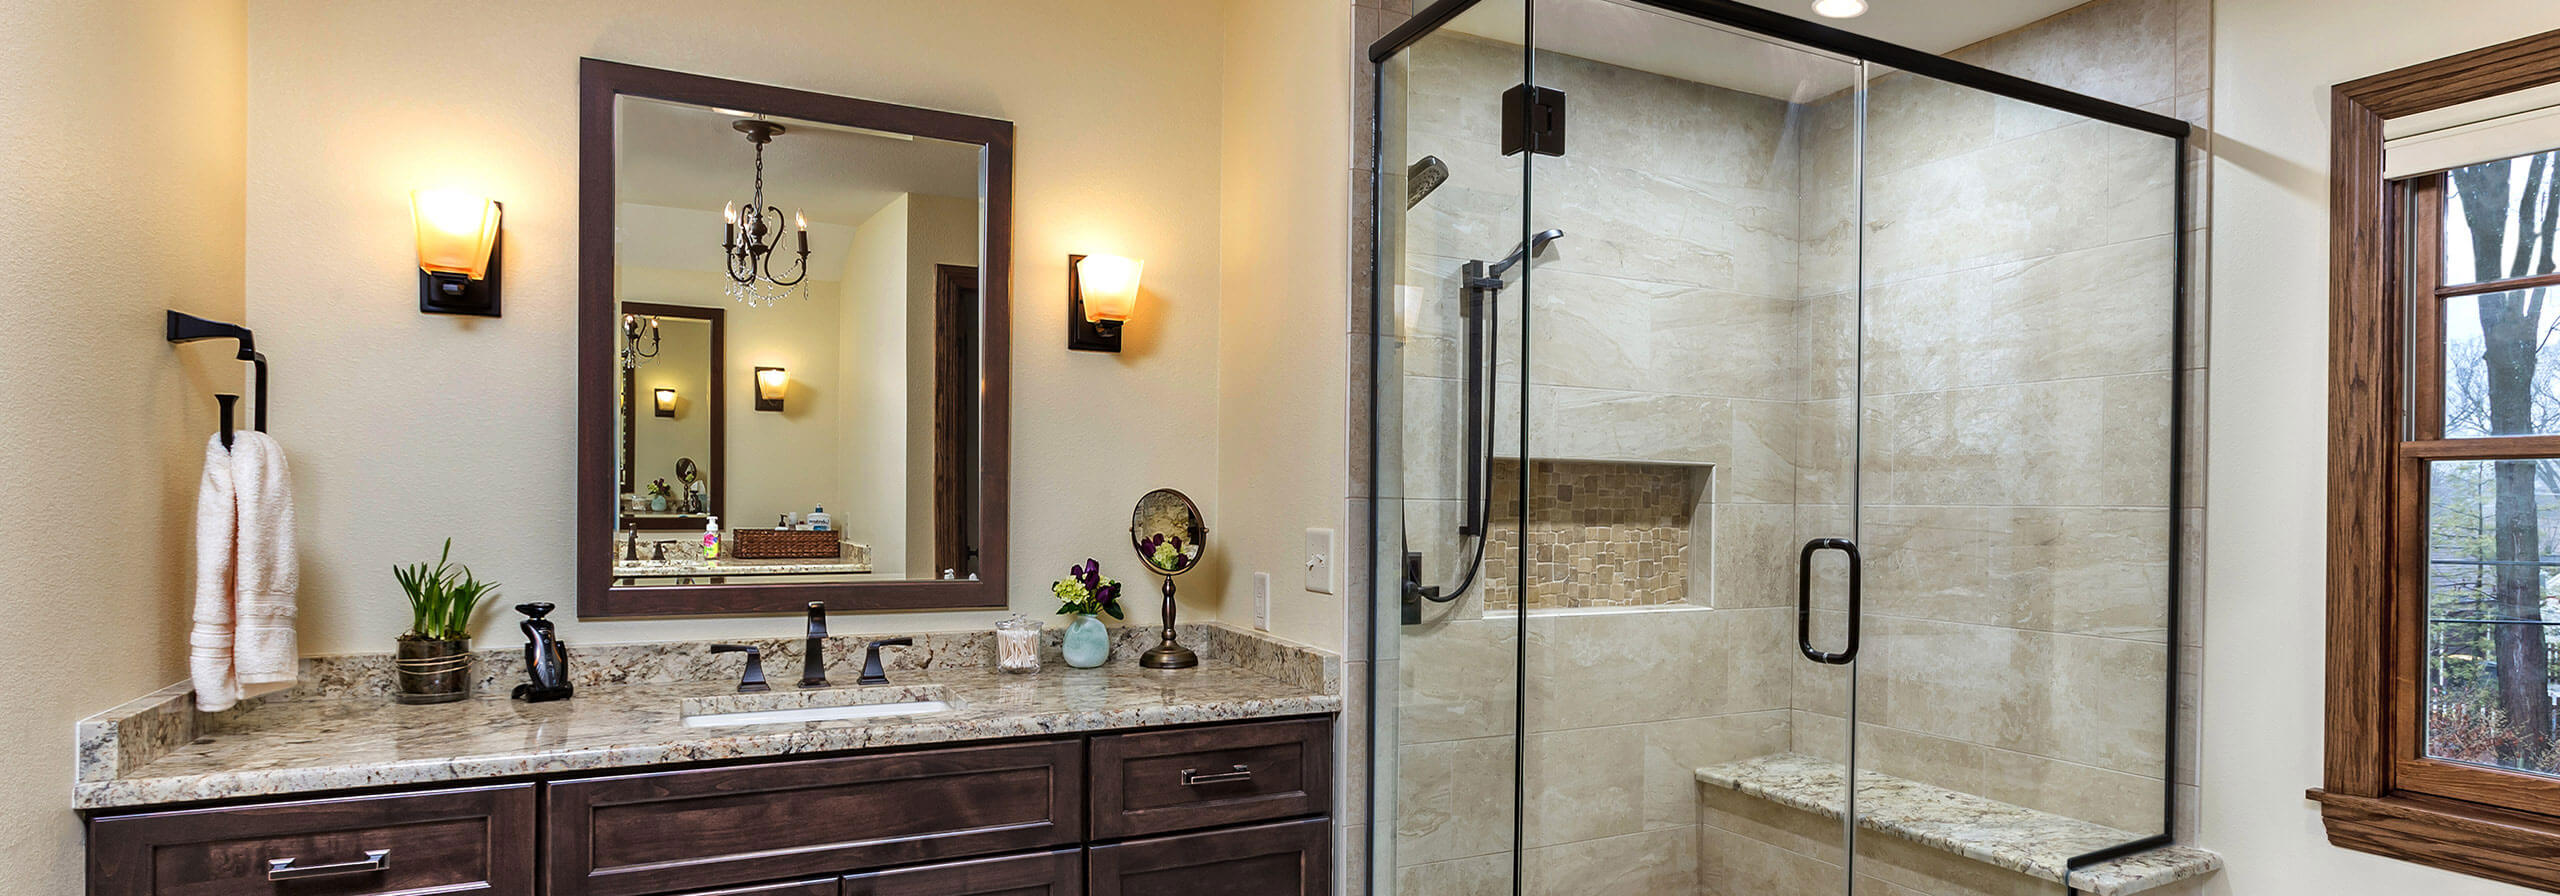 Home Additions, Kitchen, Bathroom, Remodeling | S.J. Janis ...